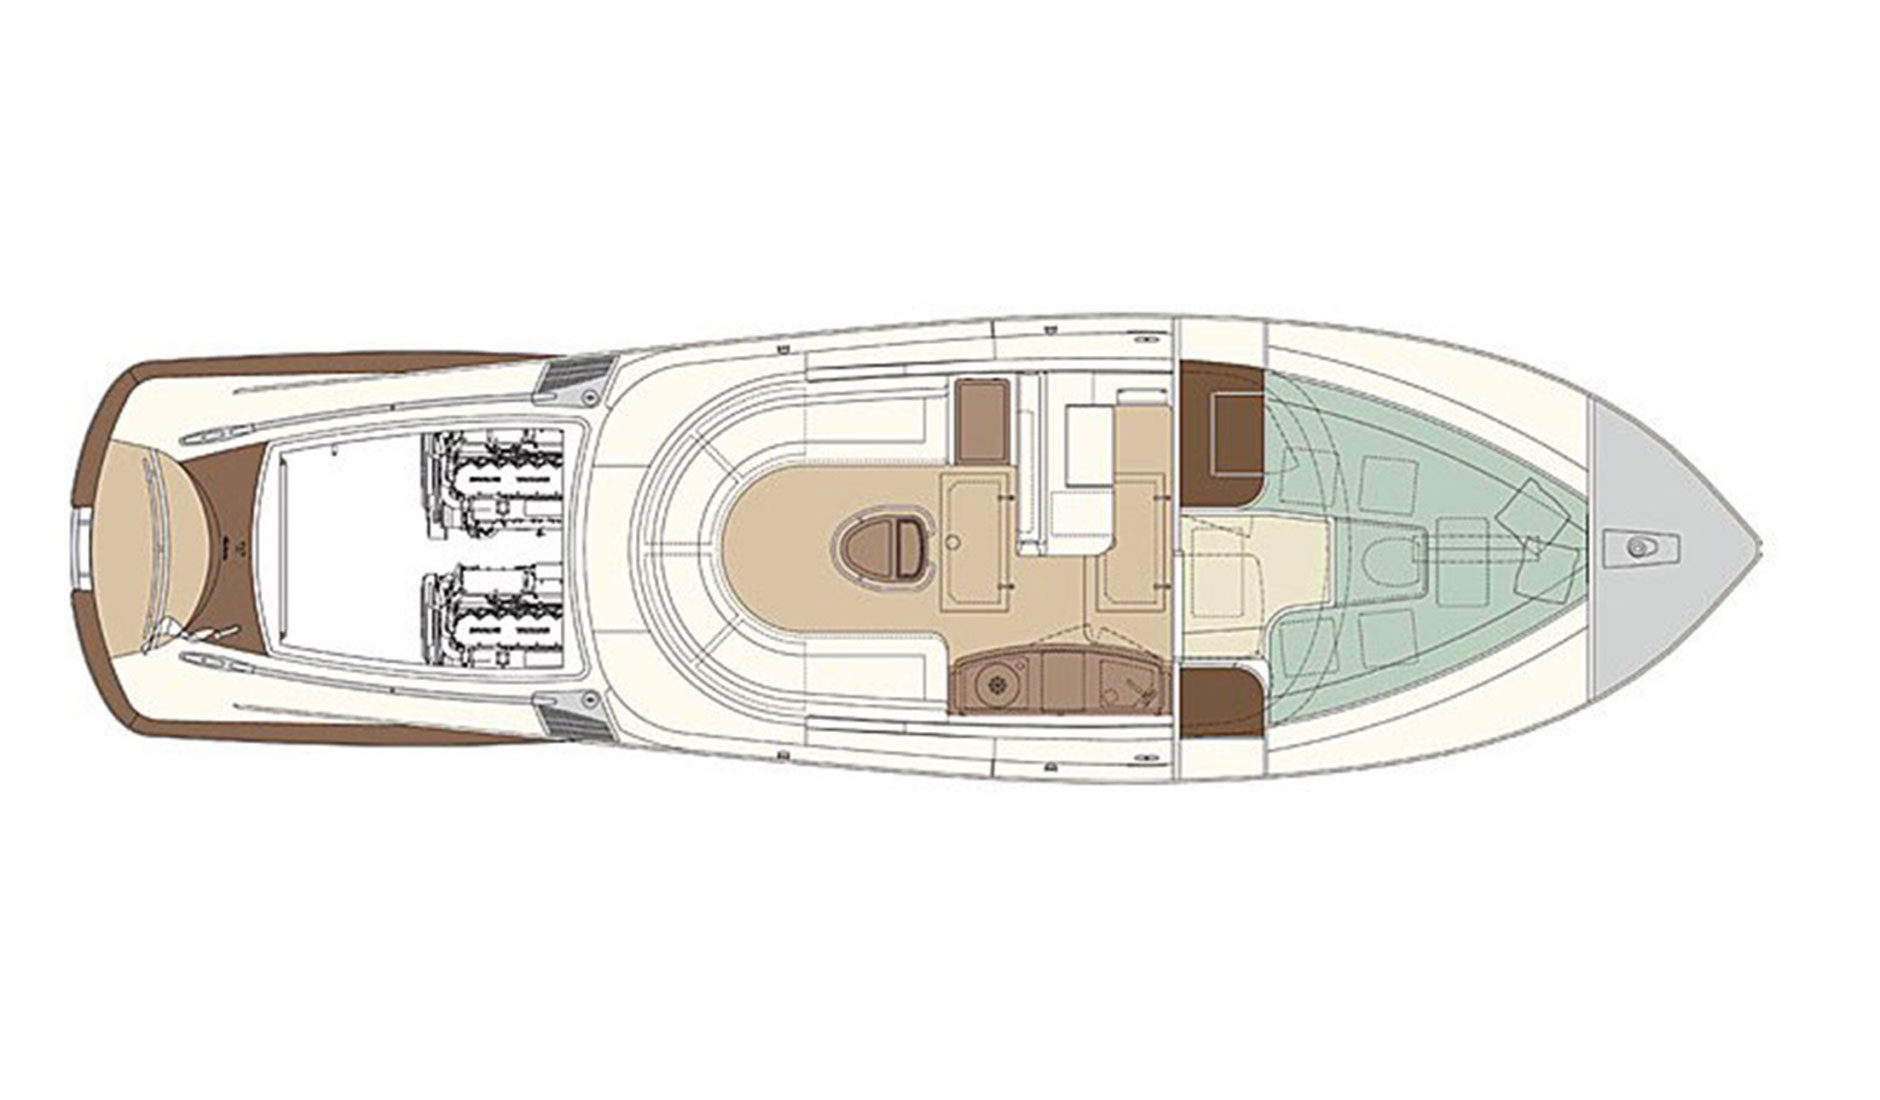 RIVA AQUARIVA SUPER 2019 год Фото  19